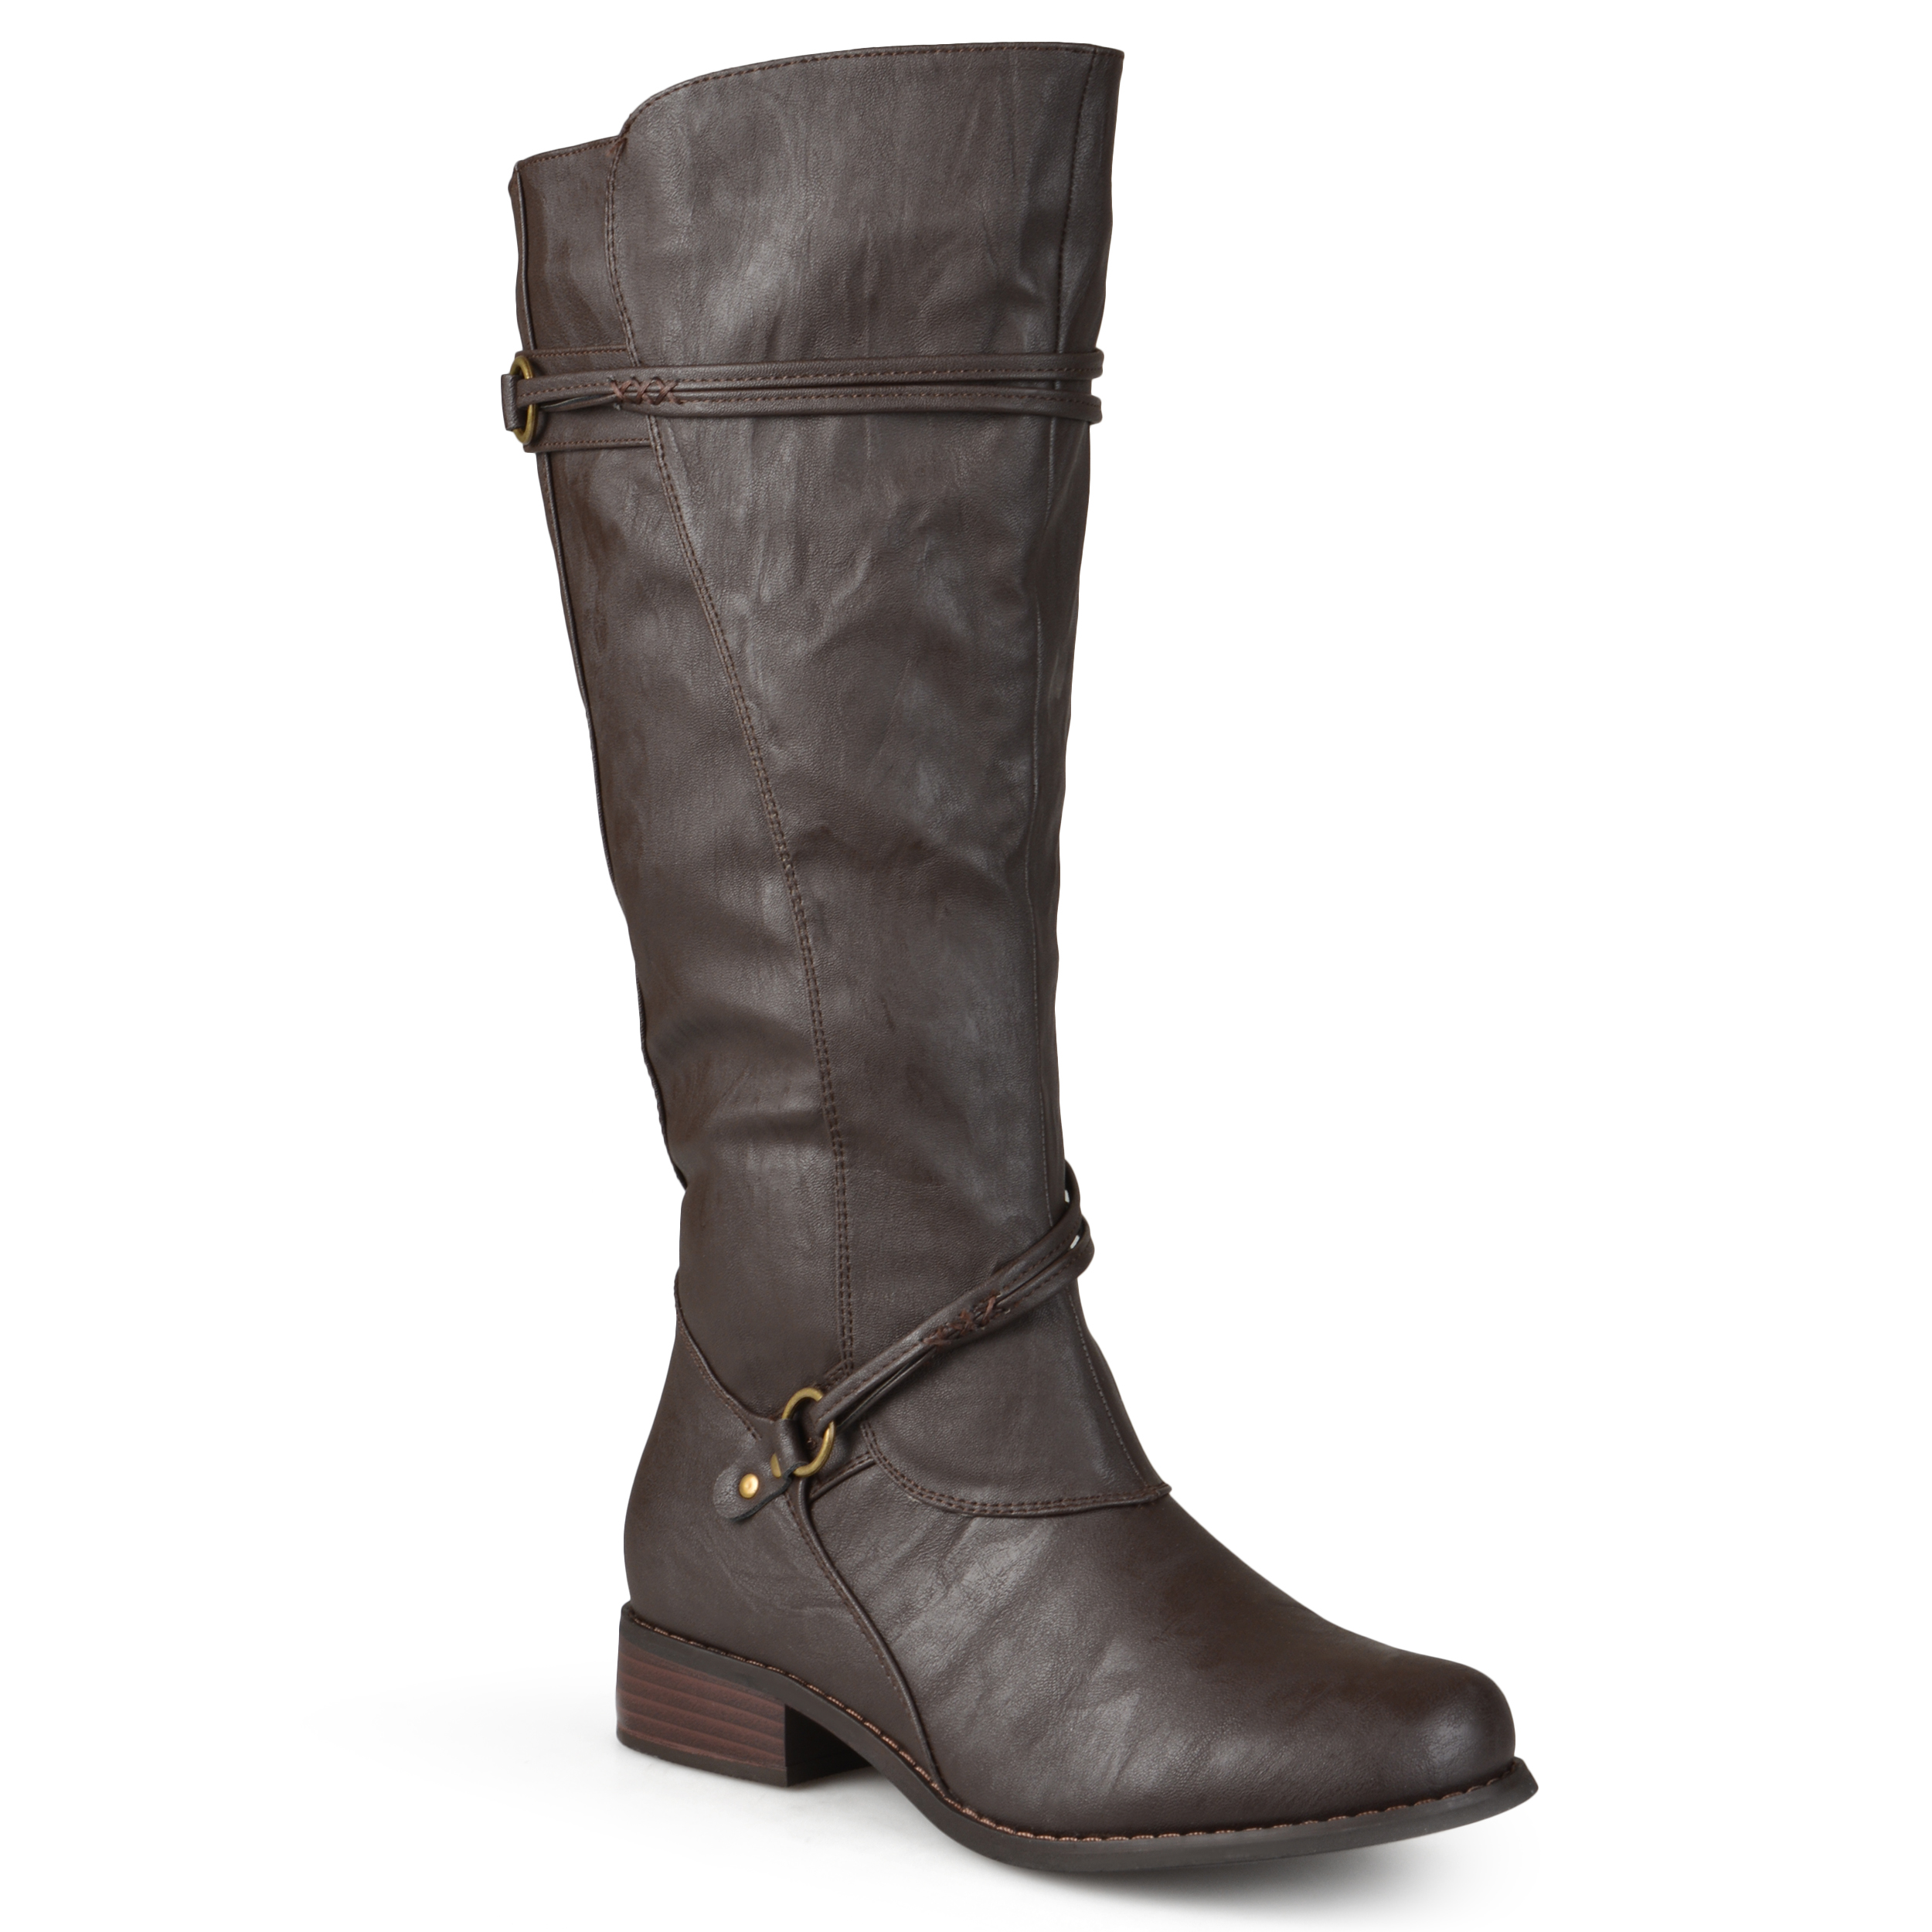 28 Unique Womens Short Boots Wide Width | sobatapk.com